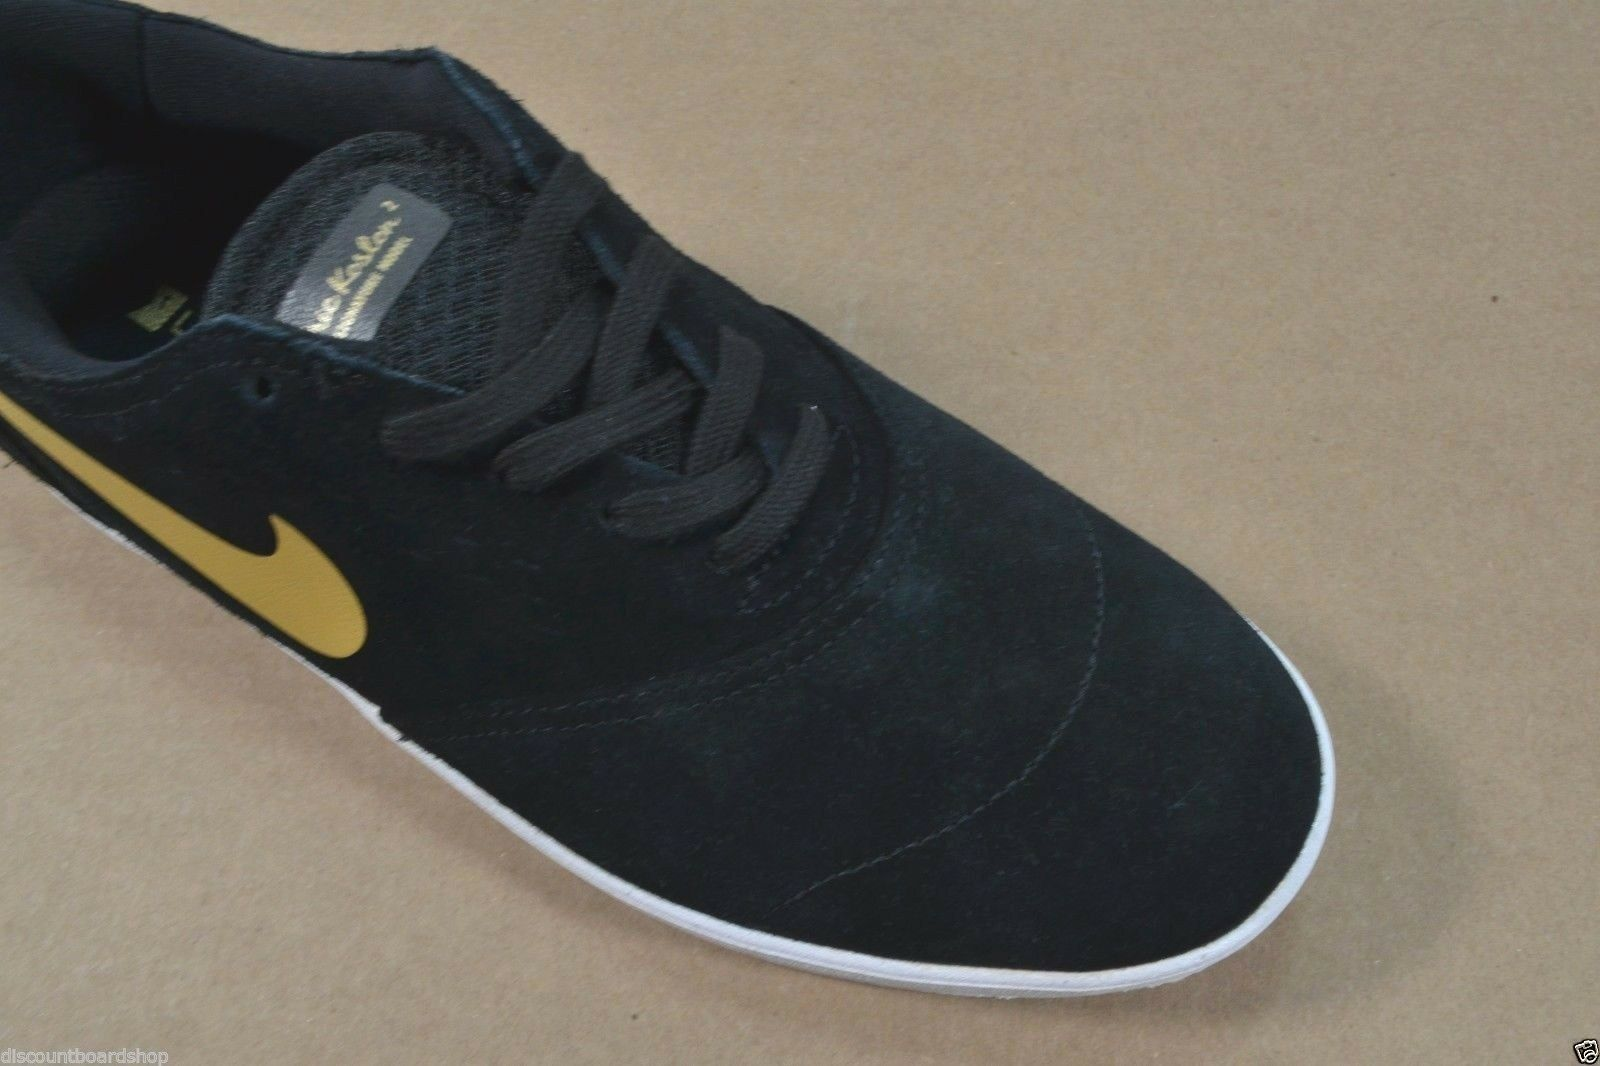 Nike 2 NIKE ERIC KOSTON 2 Nike noir Metallic Gold Discounted Skate (244) homme chaussures dd2910